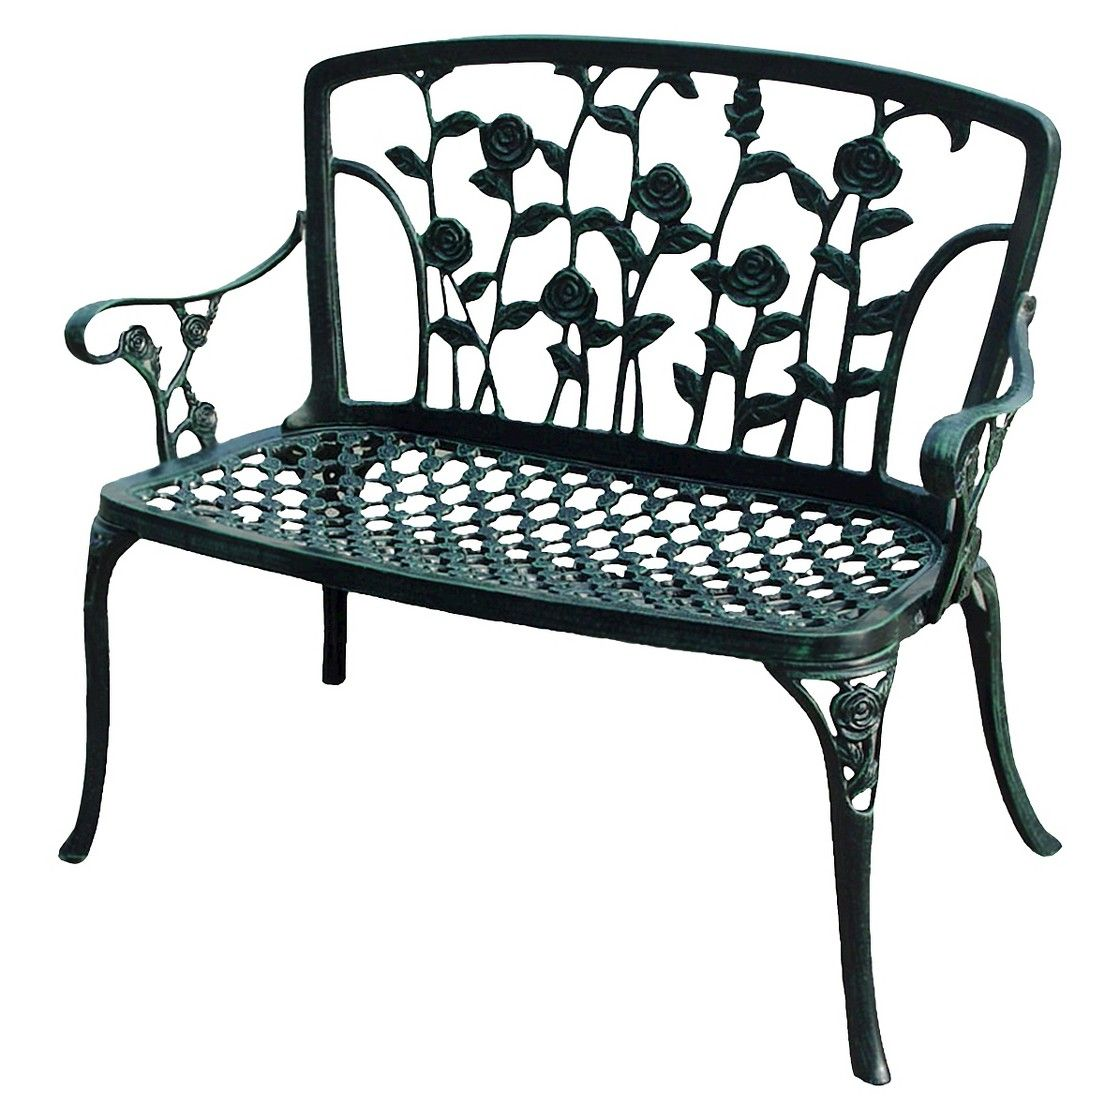 Christopher Knight Home Saint Kitts Cast Aluminum Patio Bench   Brown